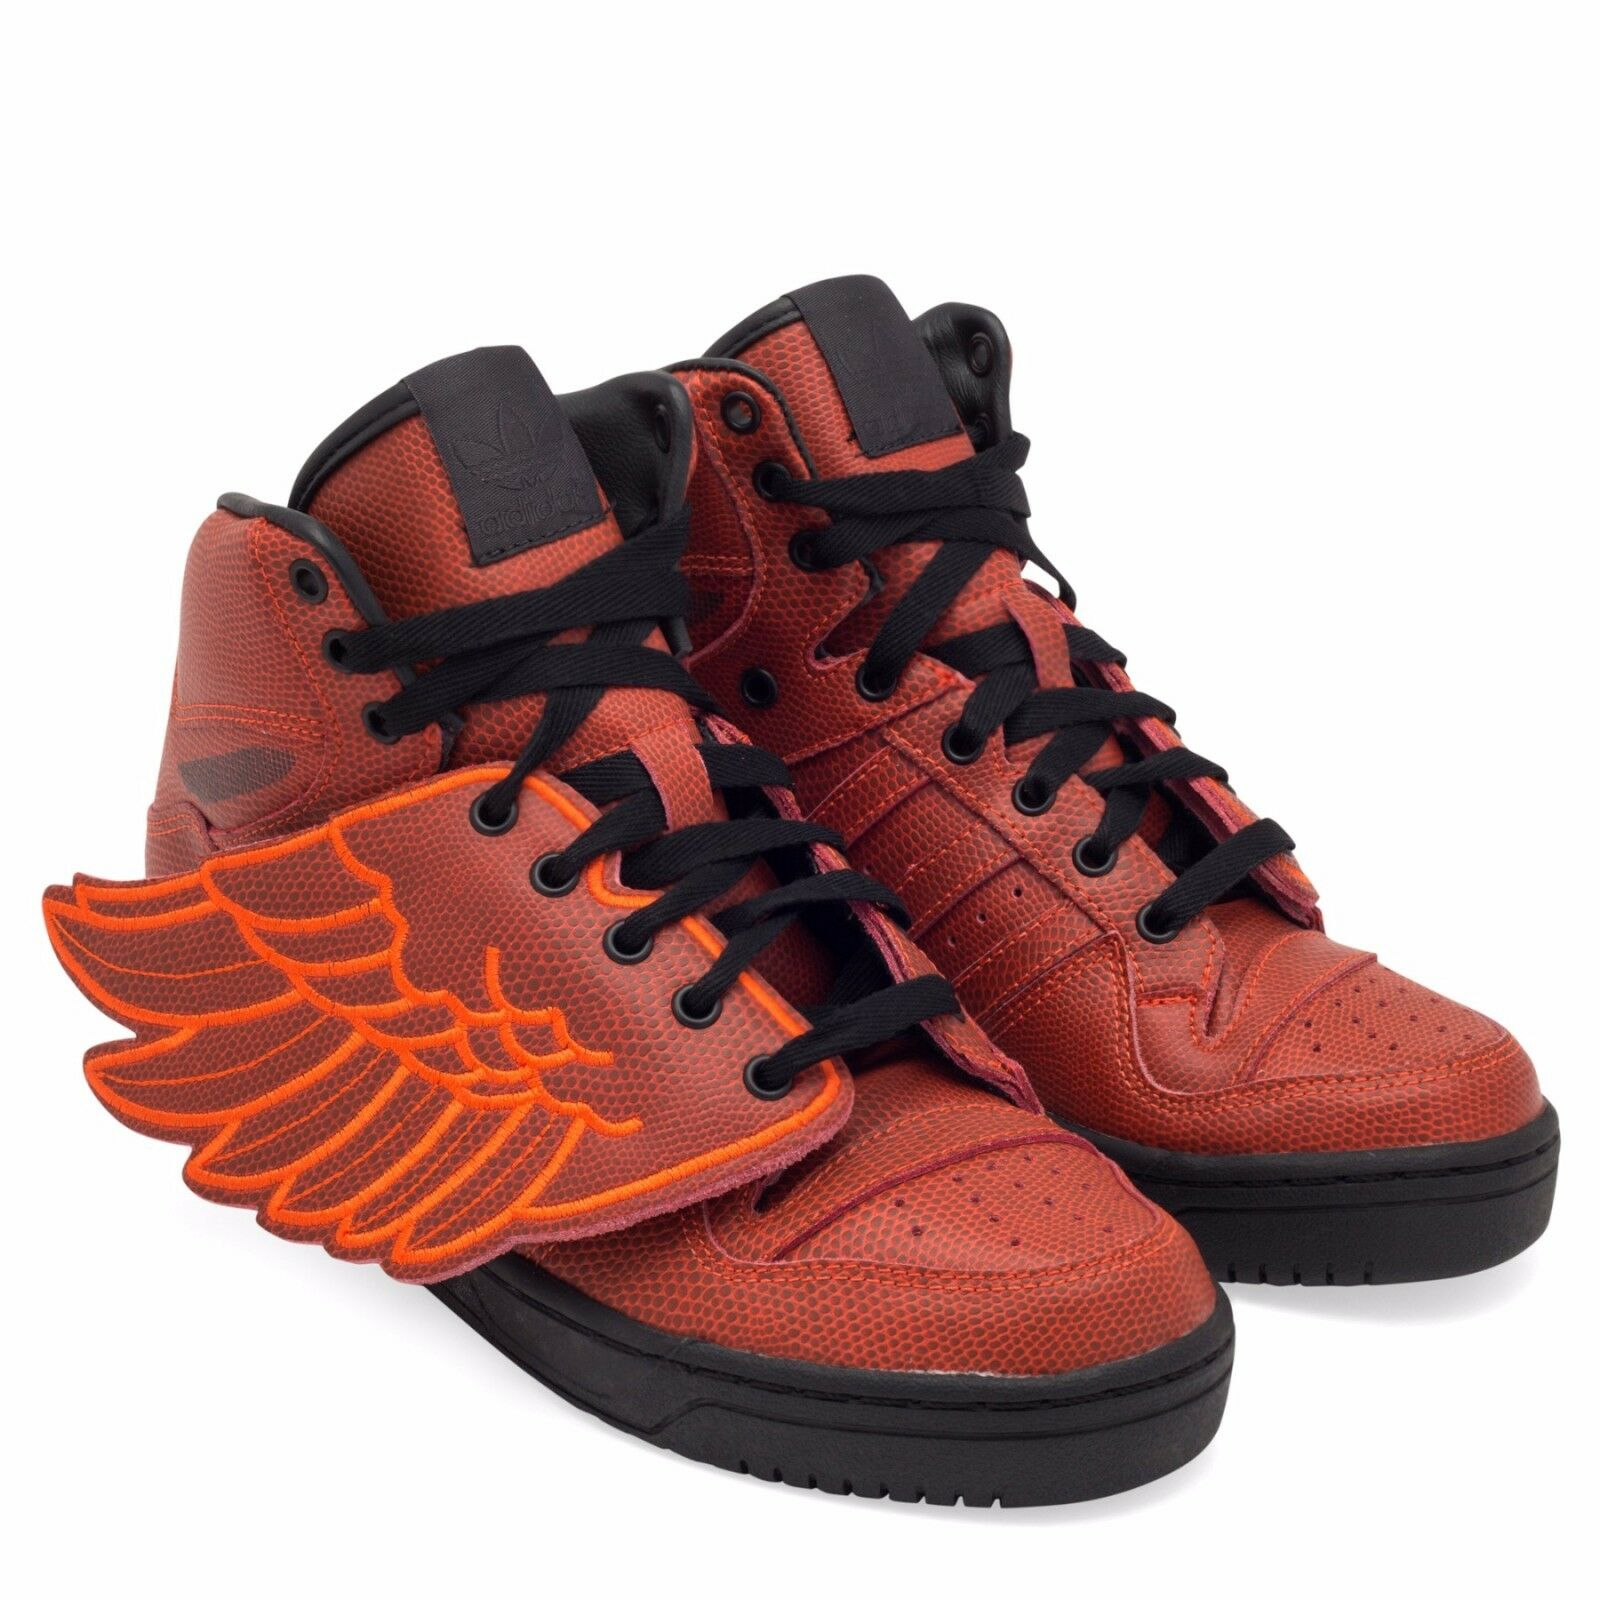 ADIDAS ORIGINALS JEREMY SCOTT JS WINGS BBALL MEN'S SHOES SIZE US 4 RED S77803